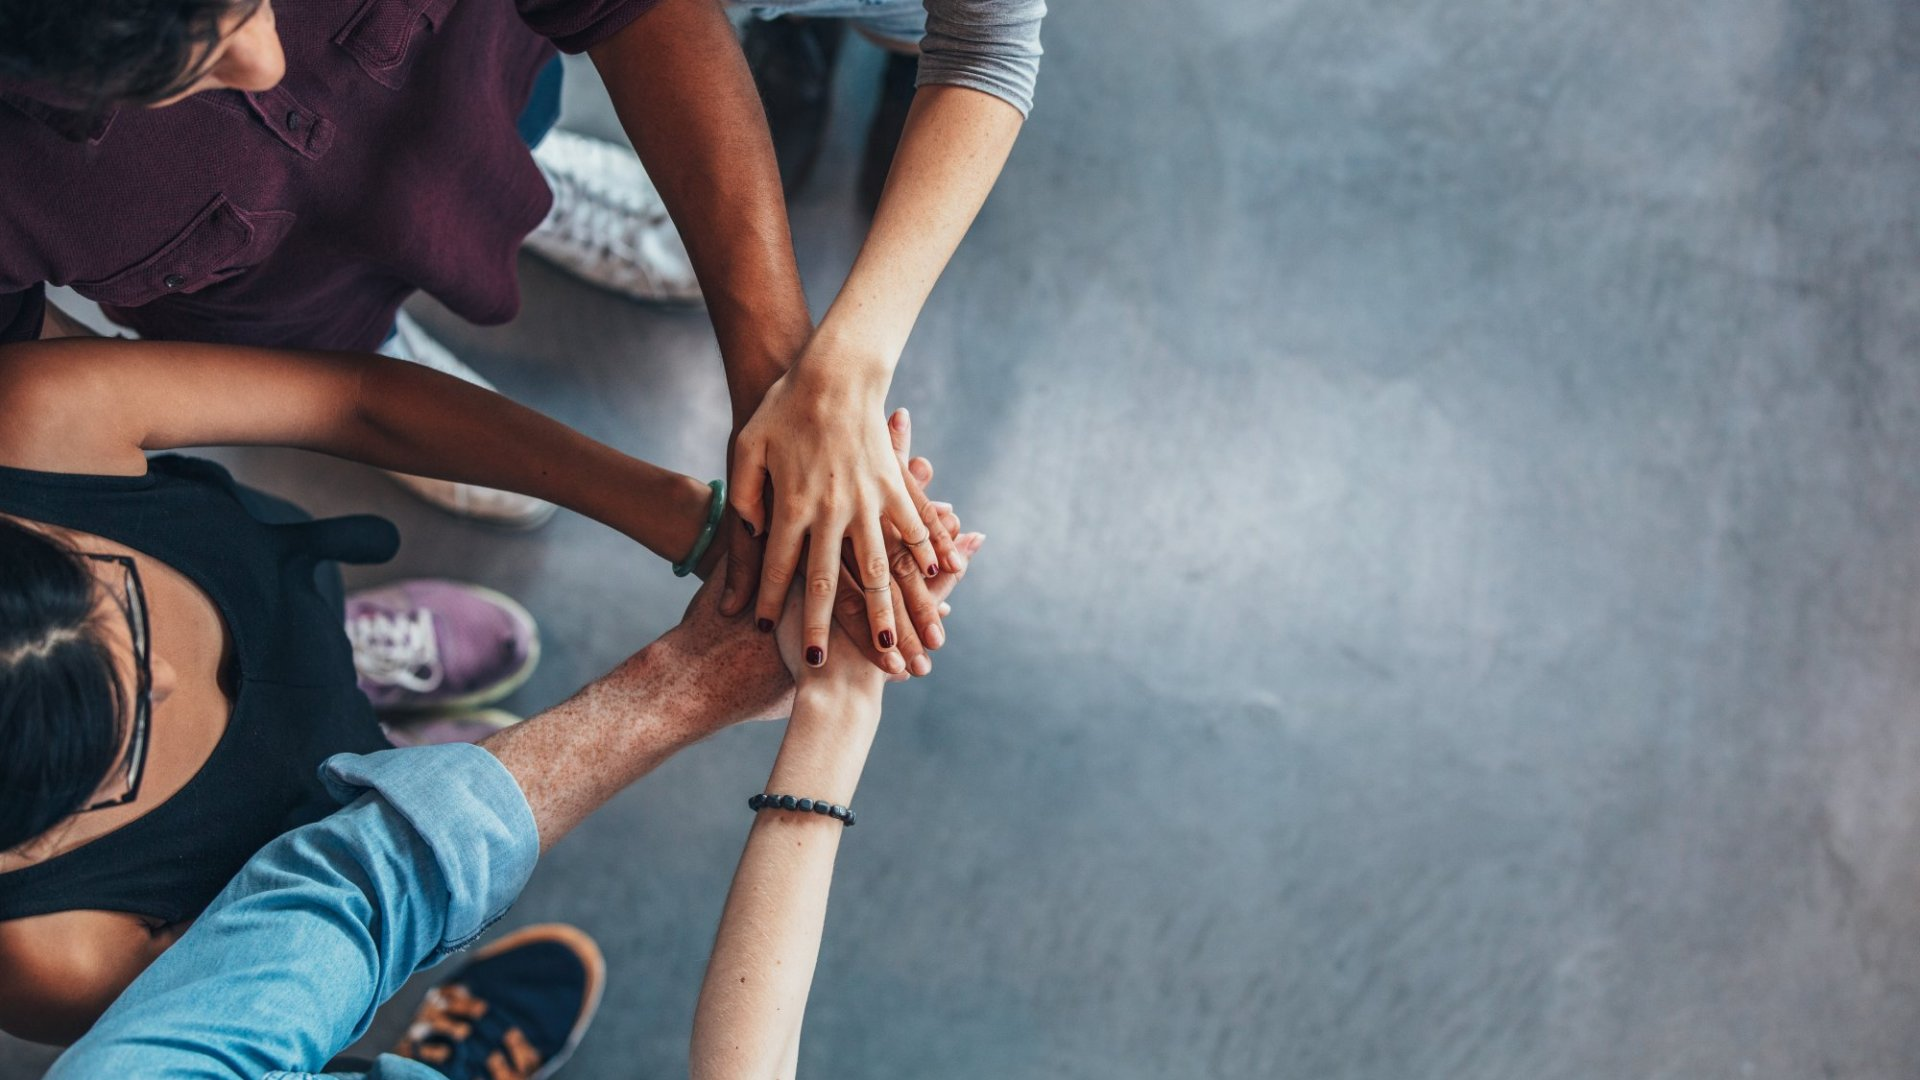 Want Your Team to Trust You? Create a Culture of Accountability With These 4 Rules